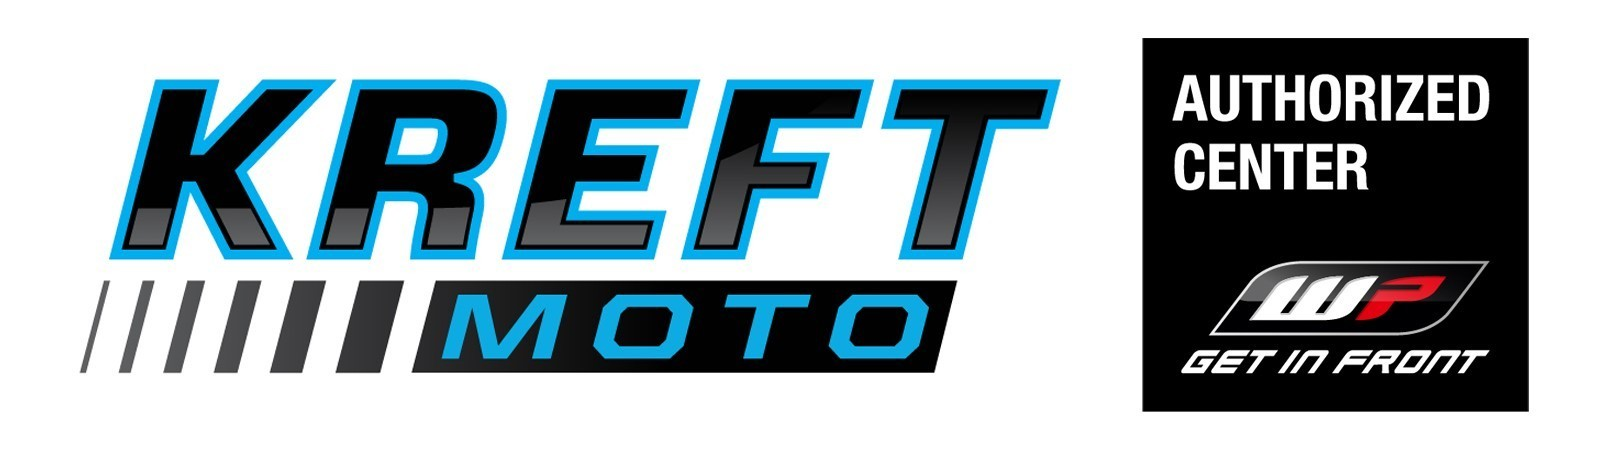 Kreft Moto becomes WP Authorized Center